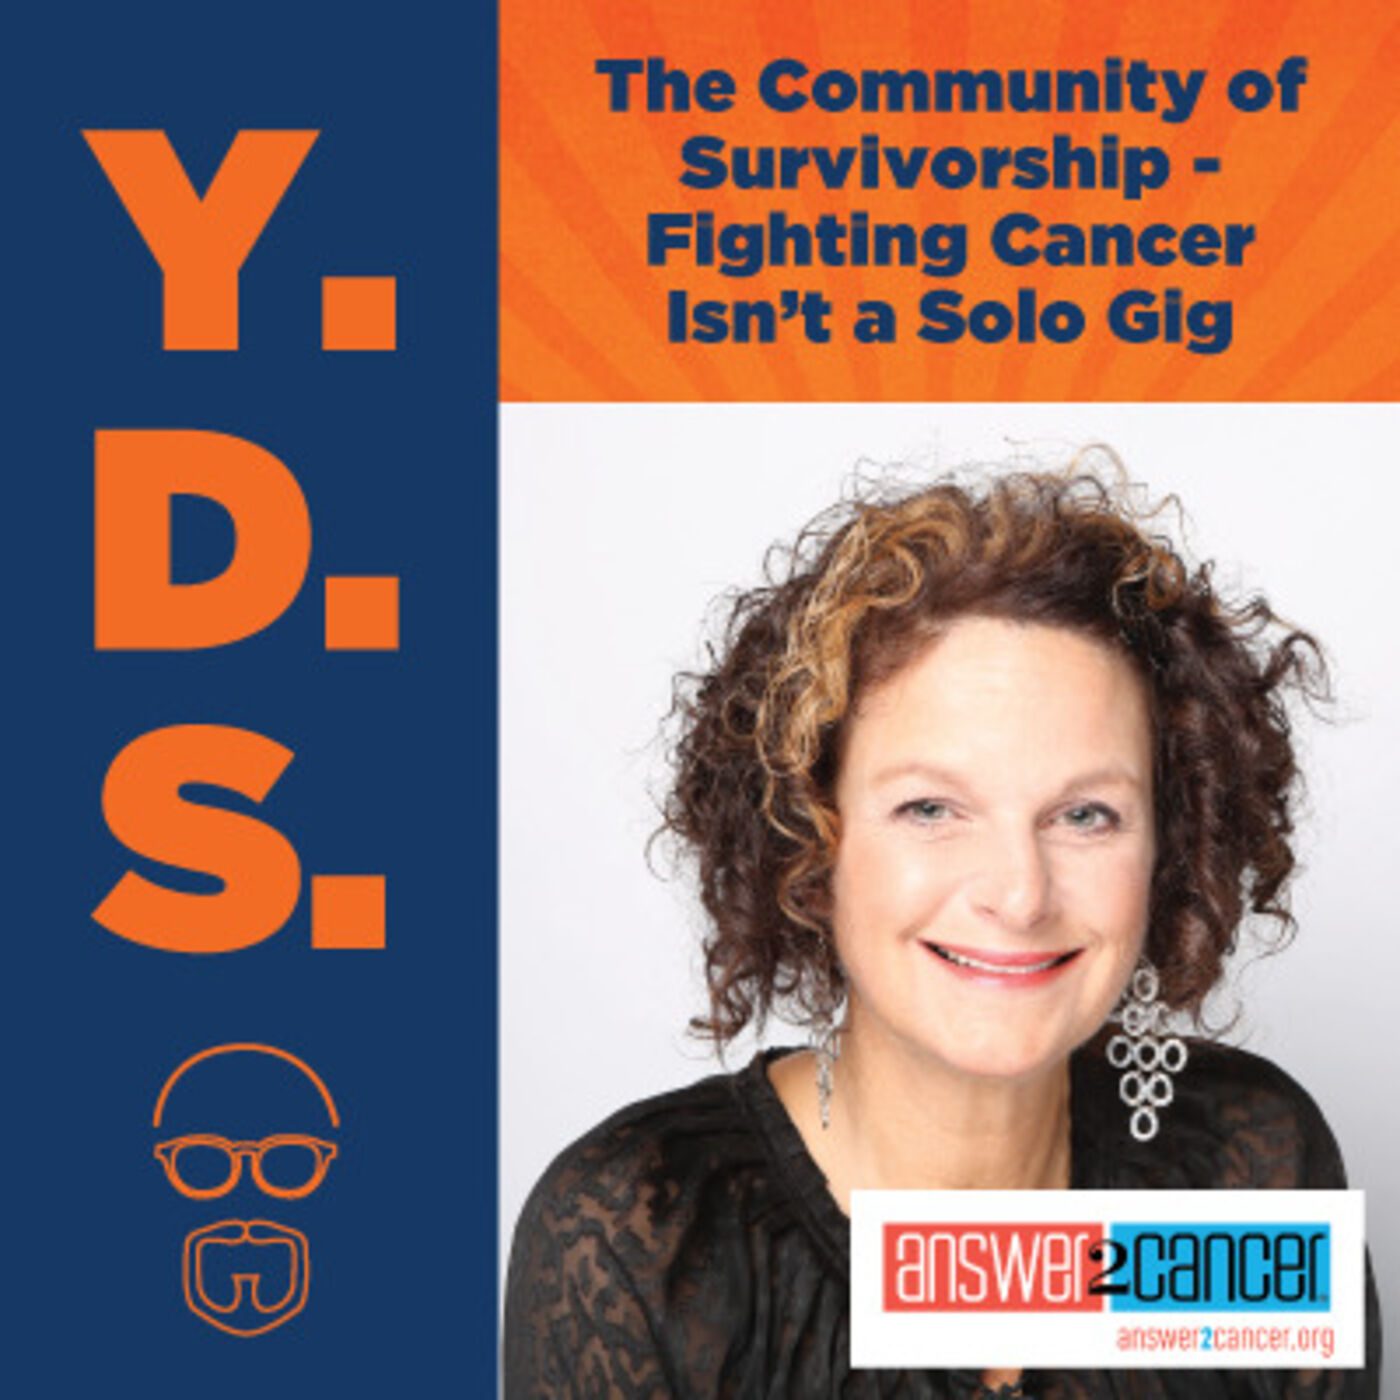 Ep. 17 – The Community of Survivorship - Fighting Cancer Isn't a Solo Gig